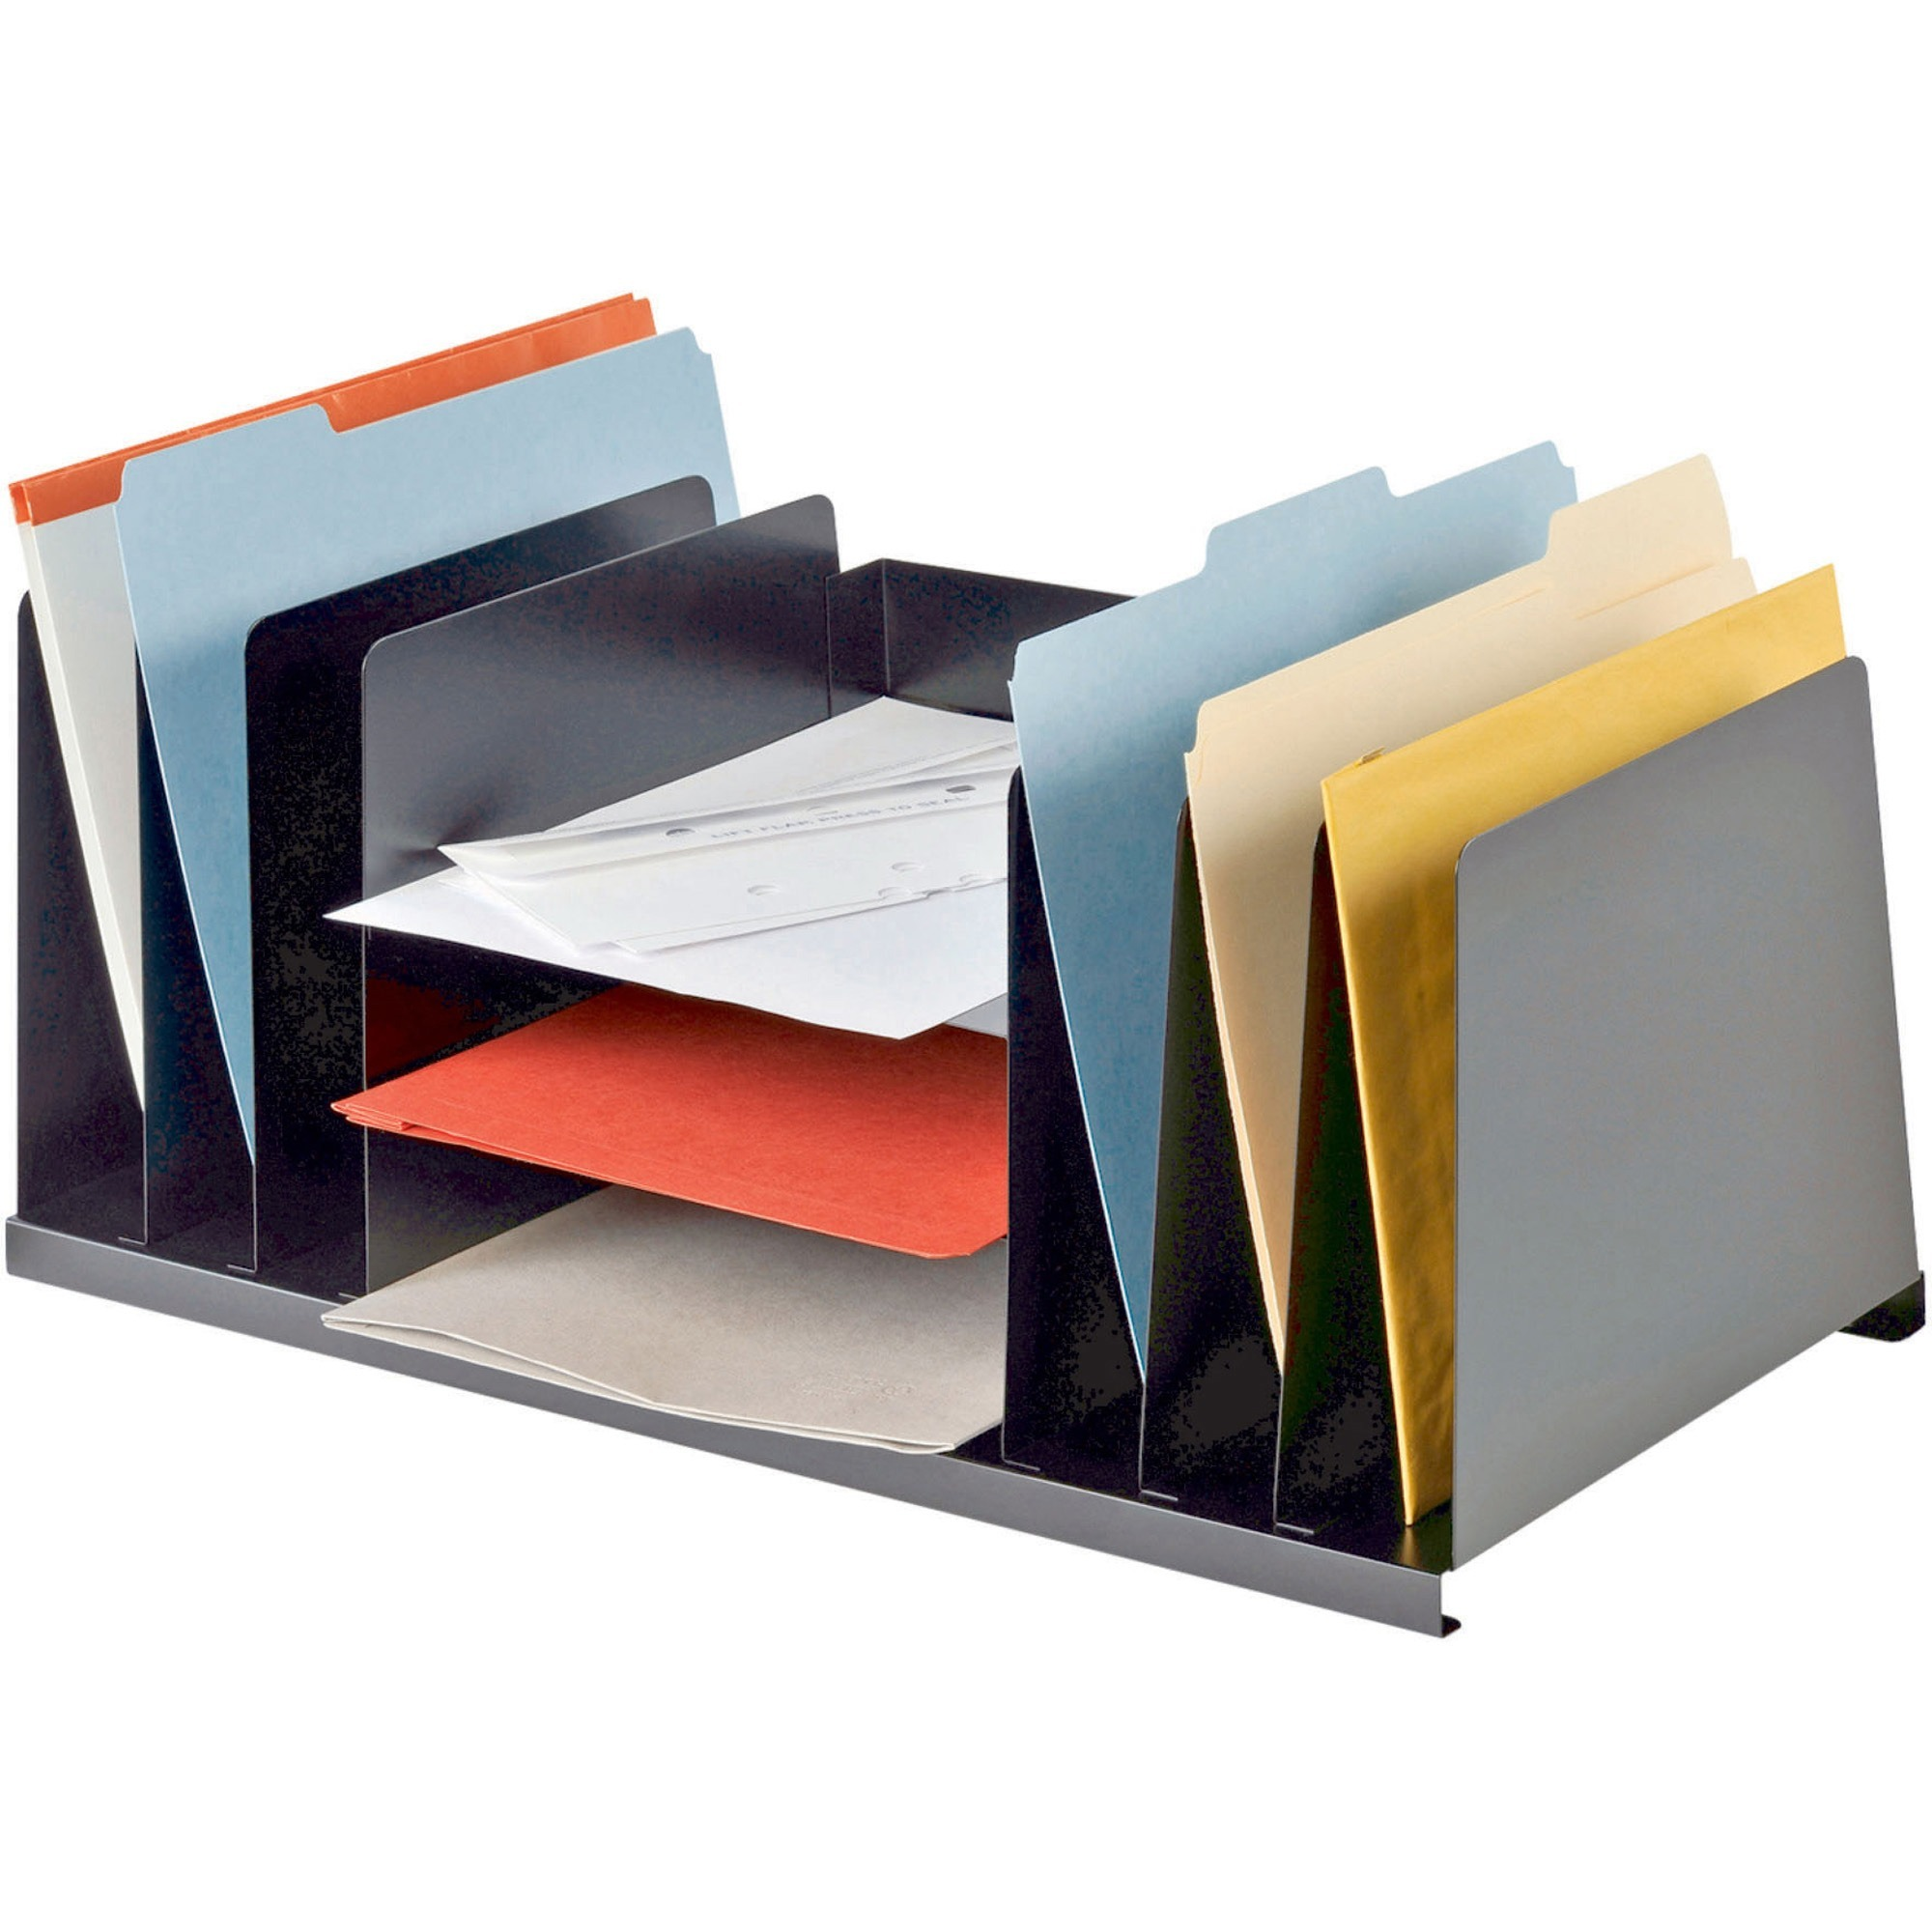 Mmf Letter Size Desk Organizer 9 Compartment S 8 Height X 21 5 Width 11 Depth Desktop Recycled Black Steel 1each